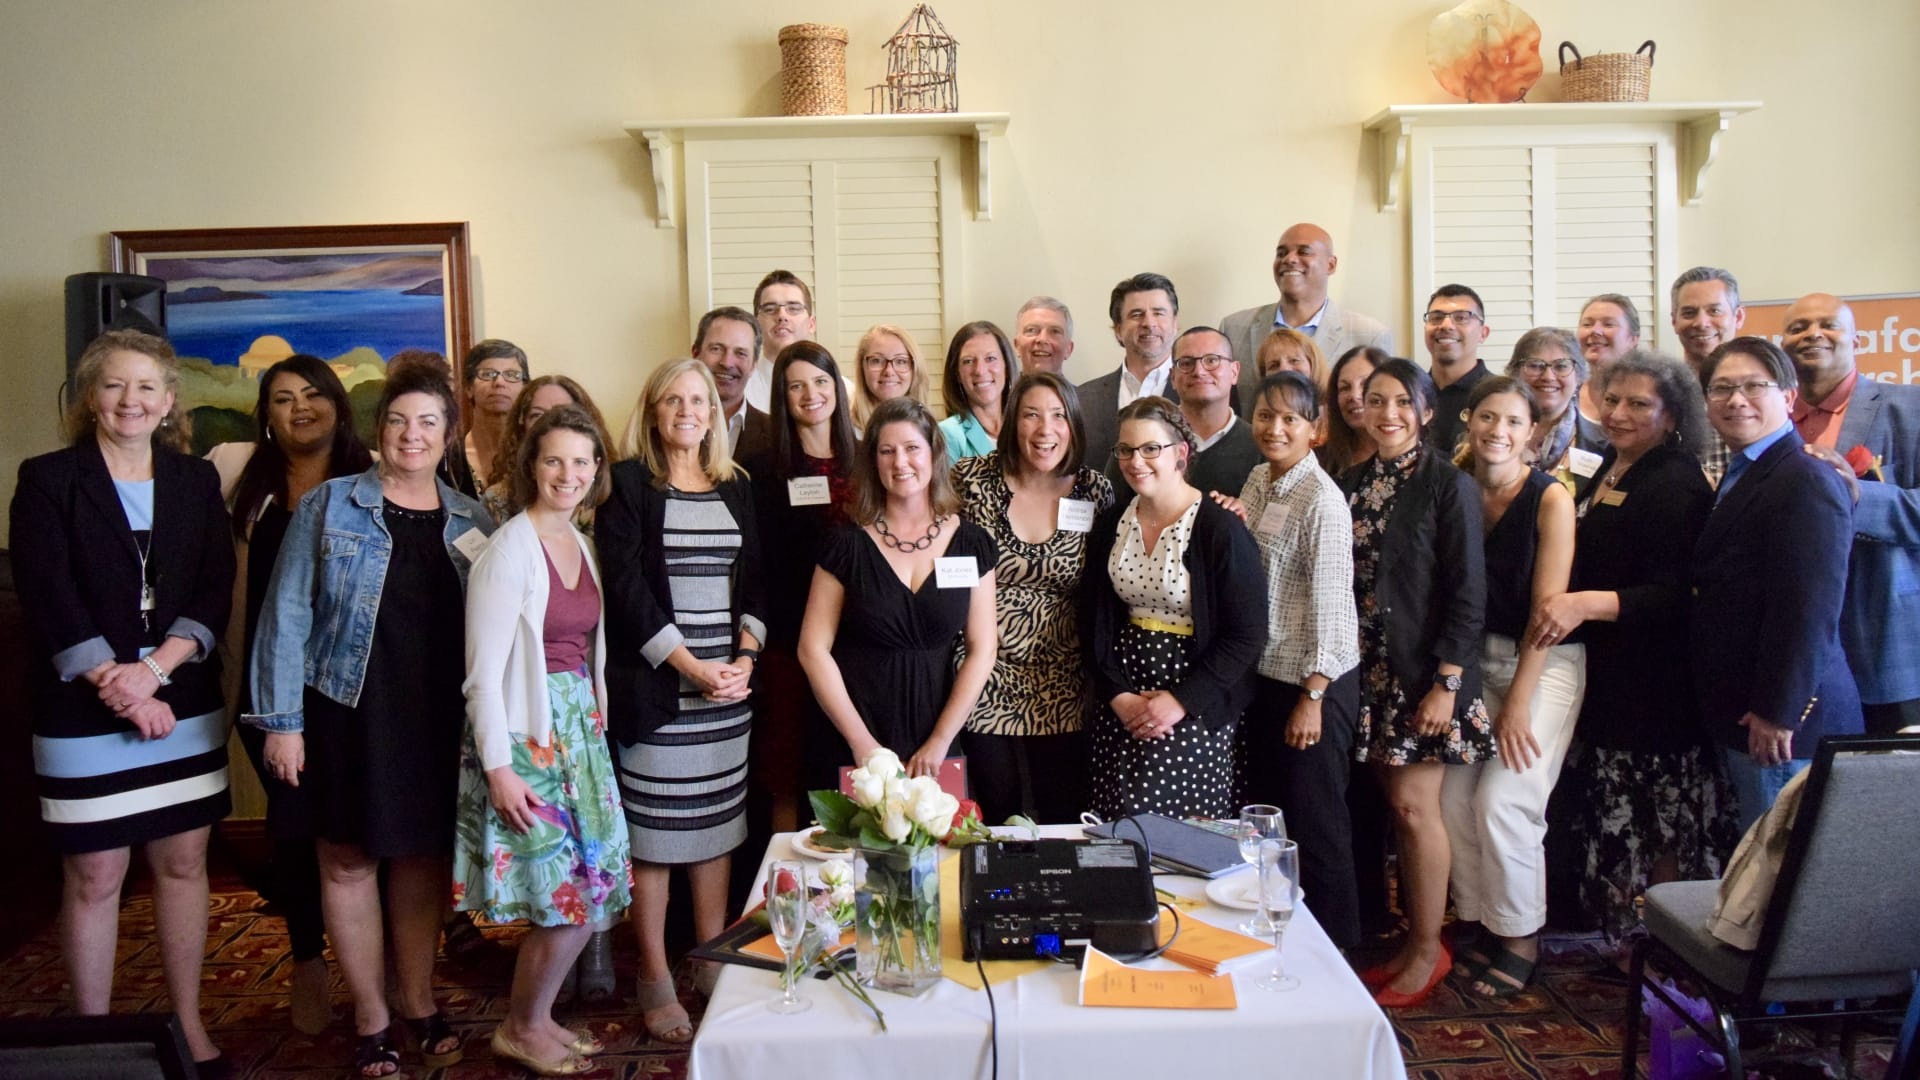 Congratulations to this years San Rafael Leadership Institute Graduates!